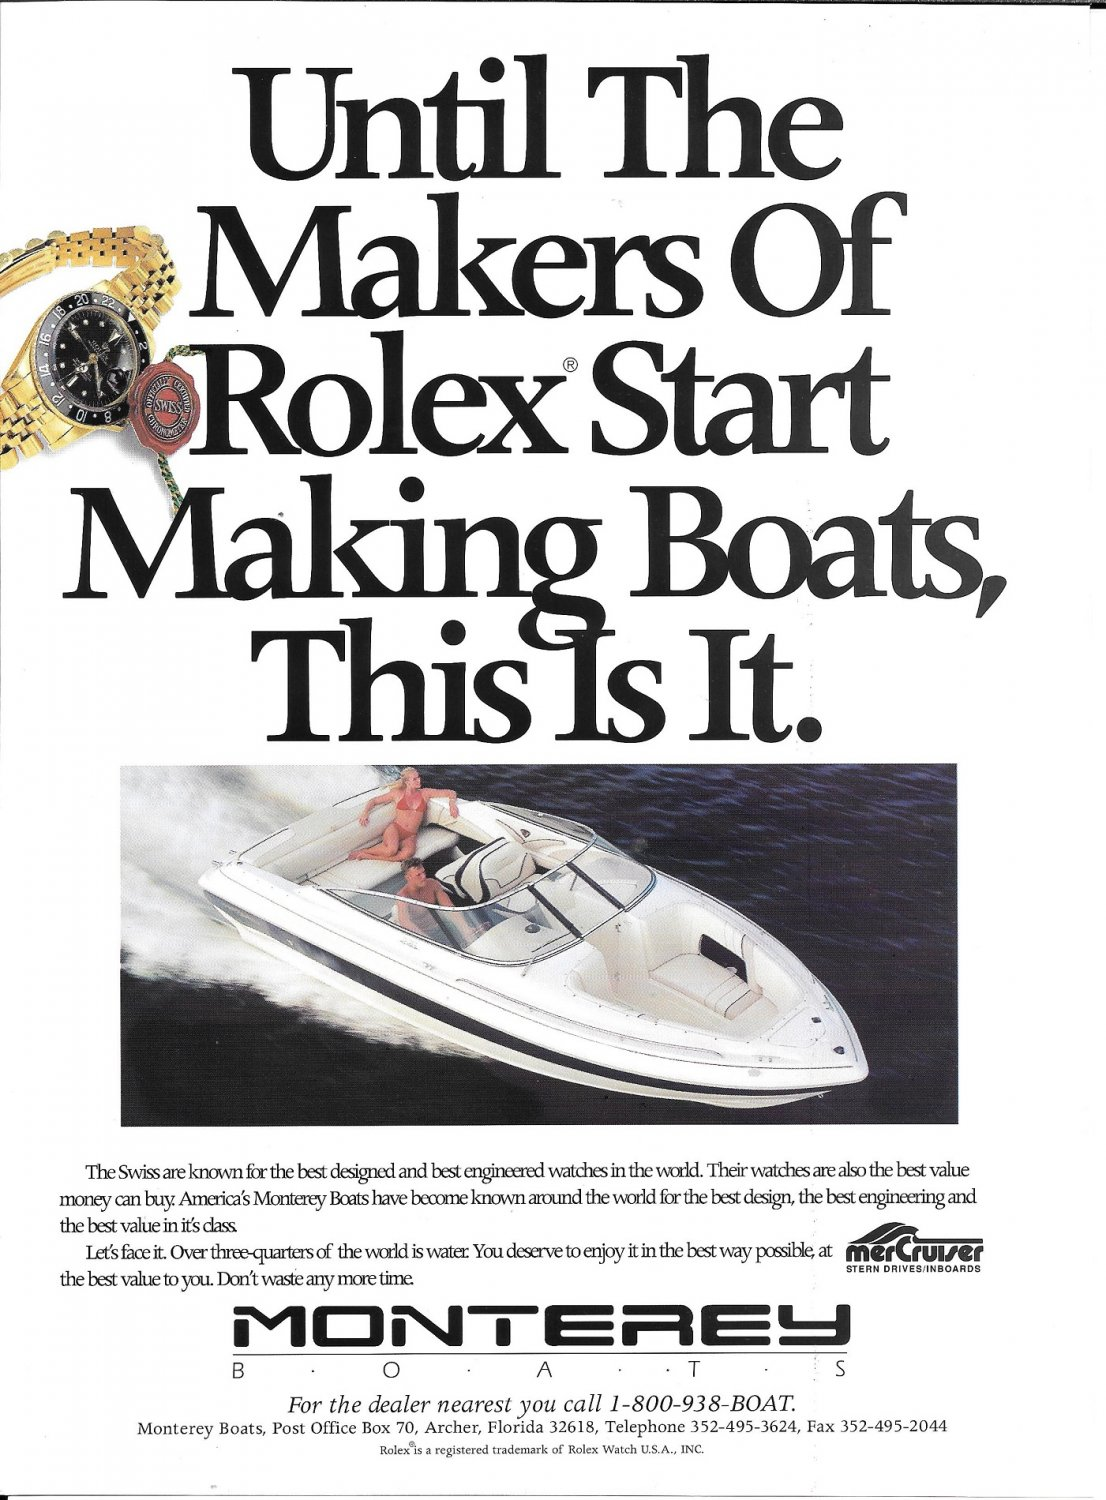 1996 Monterey Yacht Color Ad- Nice Photo- Hot Girl